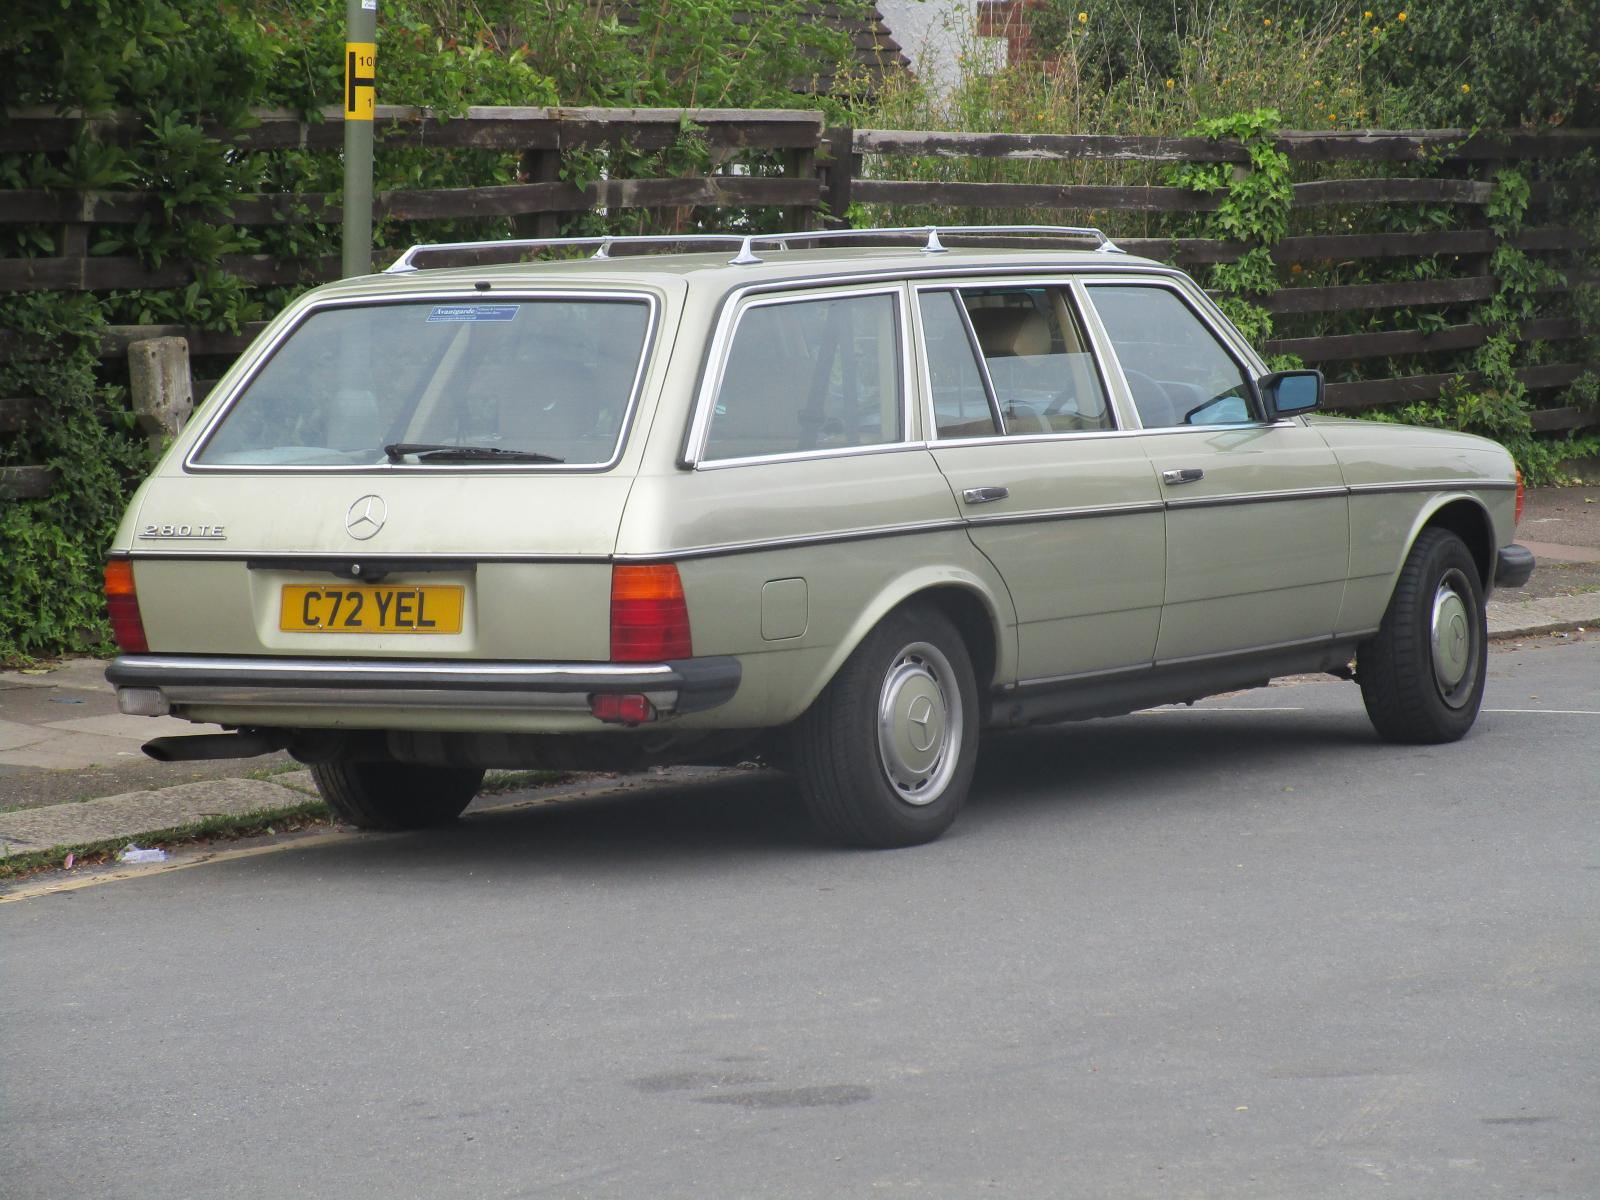 1985 Mercedes-Benz 123 Series 280 TE Auto estate Sep 2017 GG.JPG